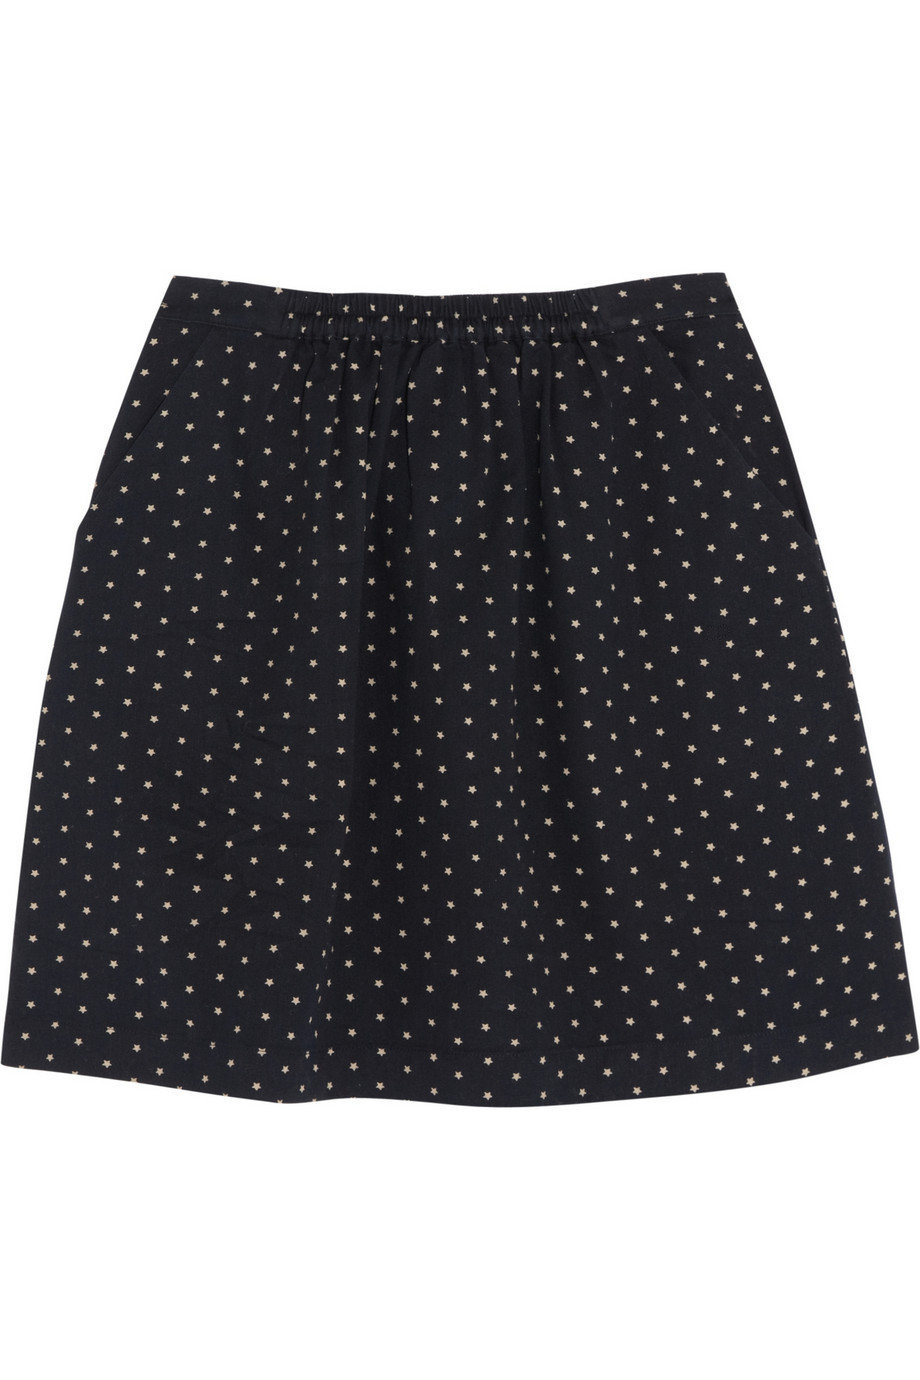 Chinti and Parker | Star-print cotton-twill mini skirt | NET-A-PORTER.COM